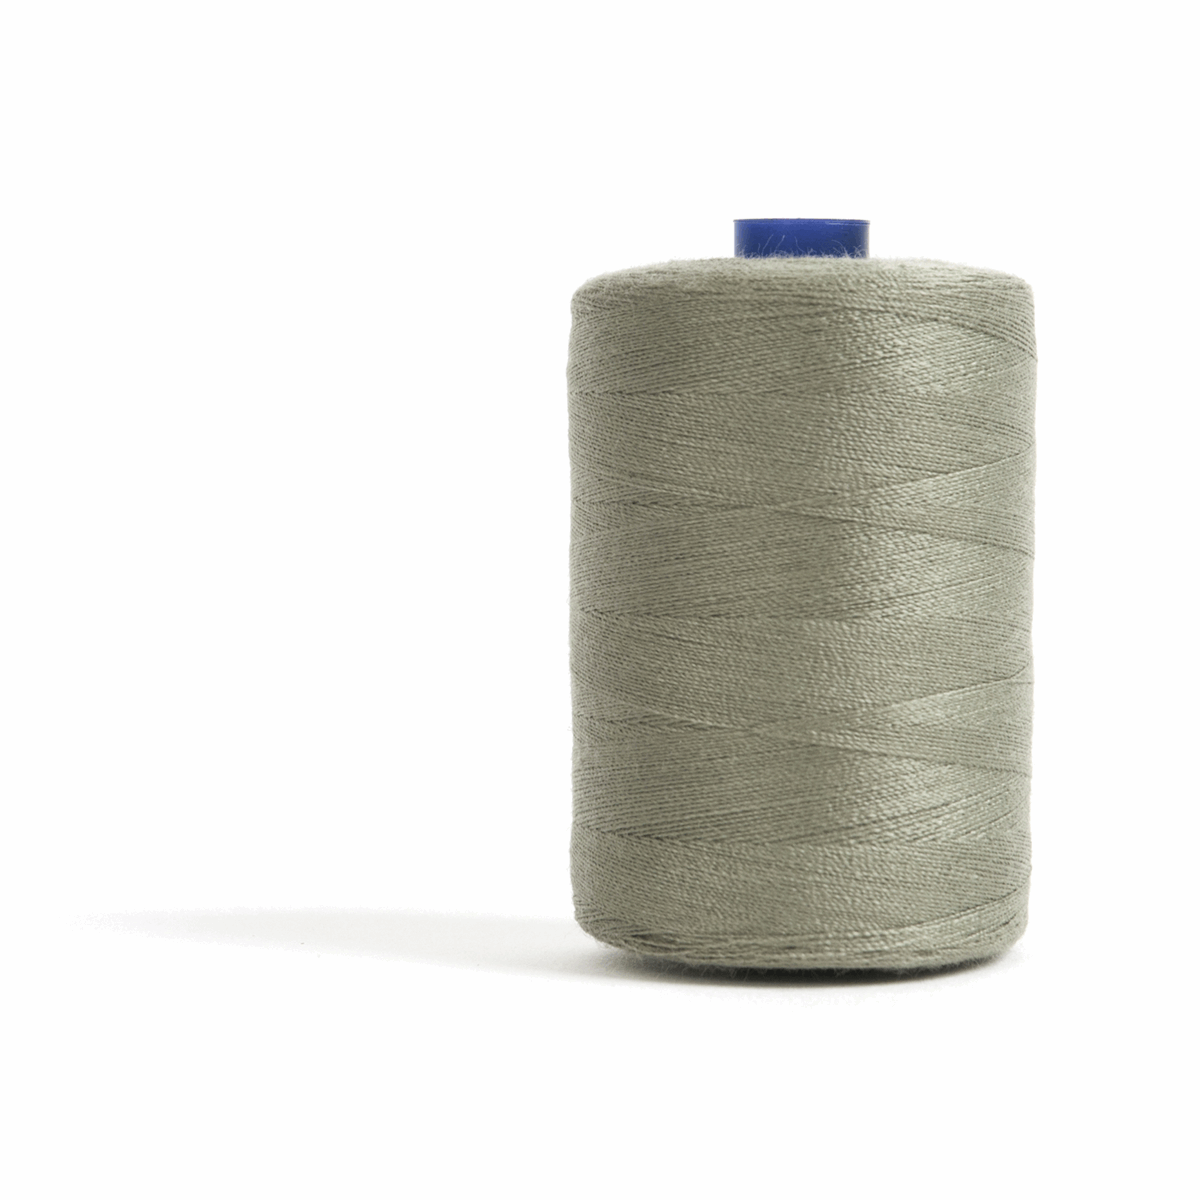 Picture of Sewing and Overlocking Thread: 5 x 1,000m: Olive